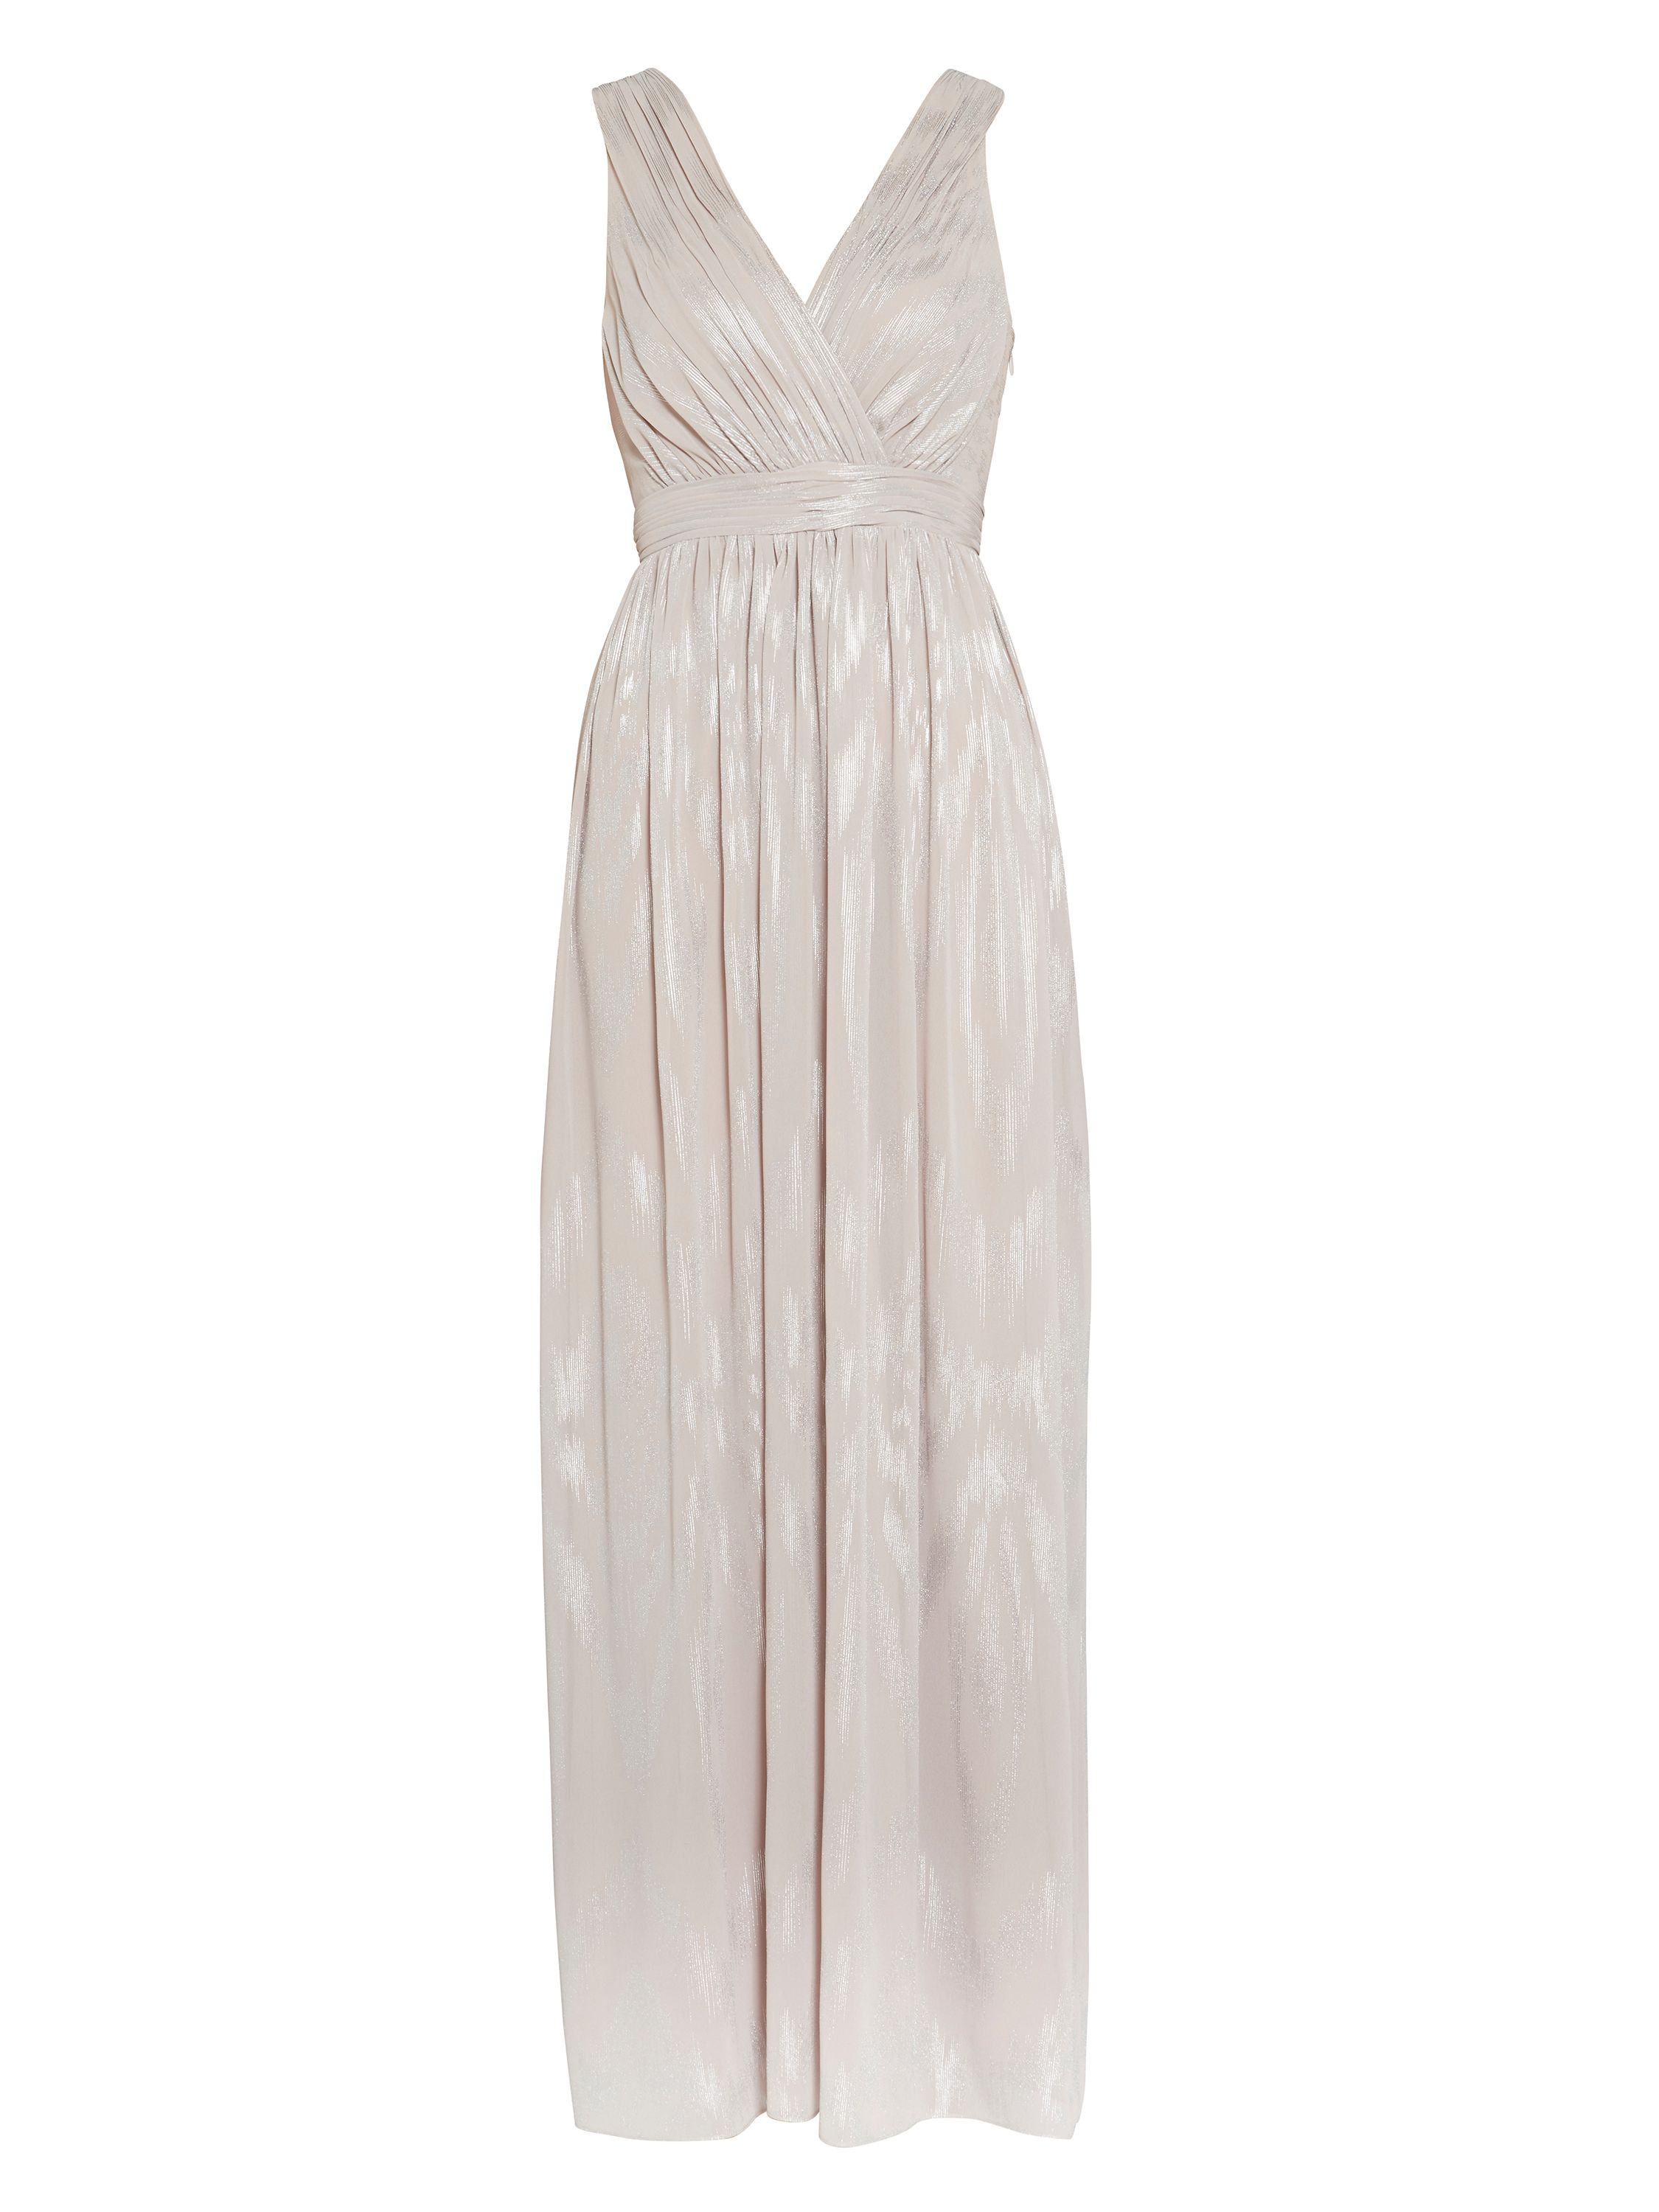 Gina Bacconi Twinkle chiffon maxi dress, White